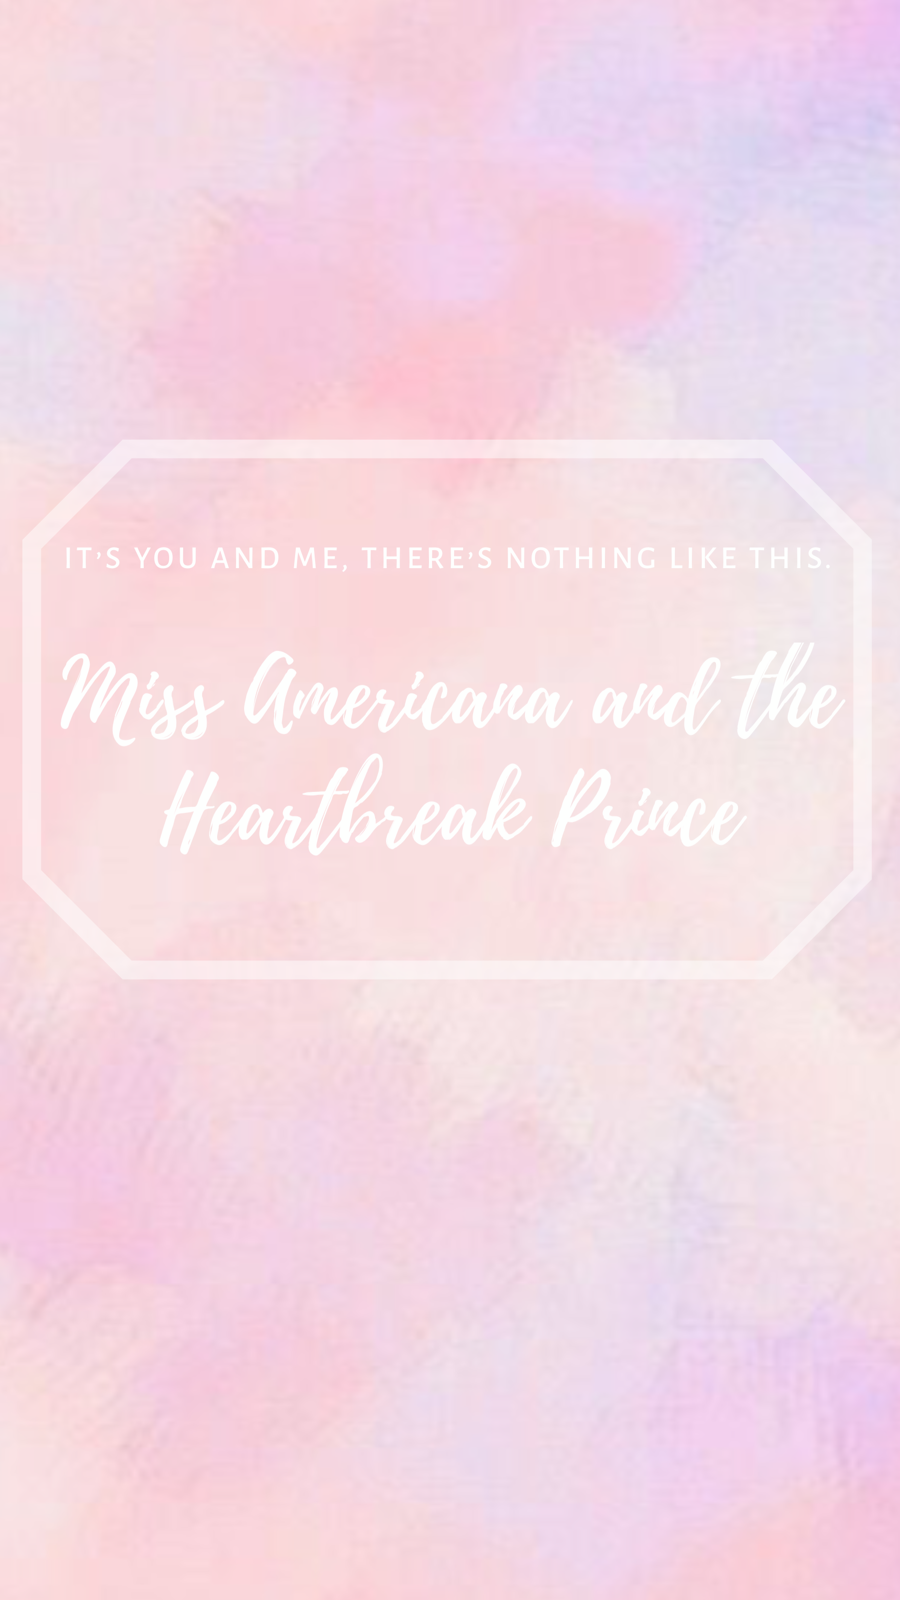 Miss Americana And The Heartbreak Prince Taylor Swift Lyrics Taylor Swift Song Lyrics Taylor Swift Songs